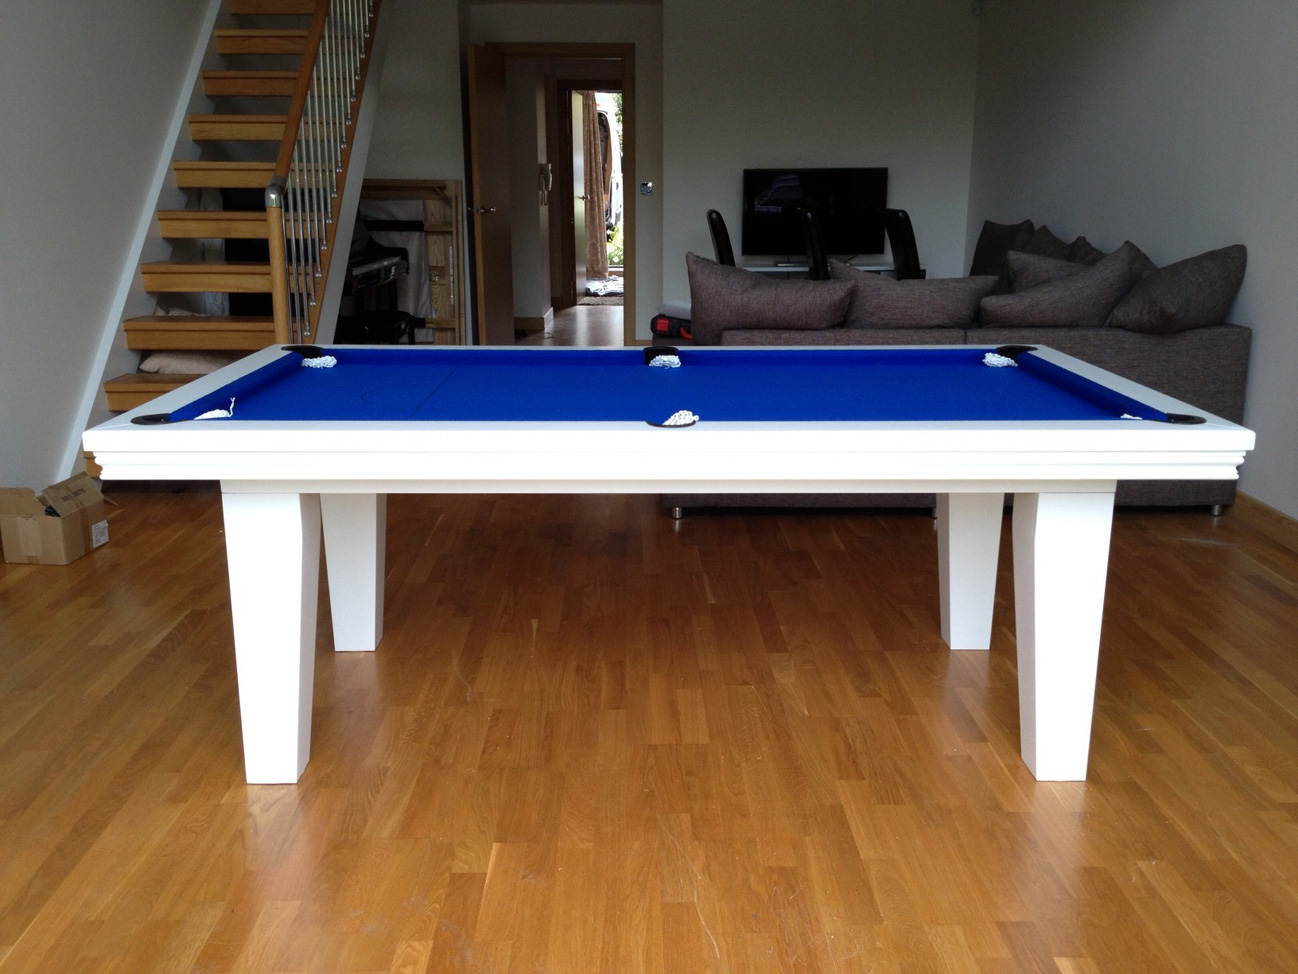 Pool Dining Table In White Blue Snooker Pool Tables